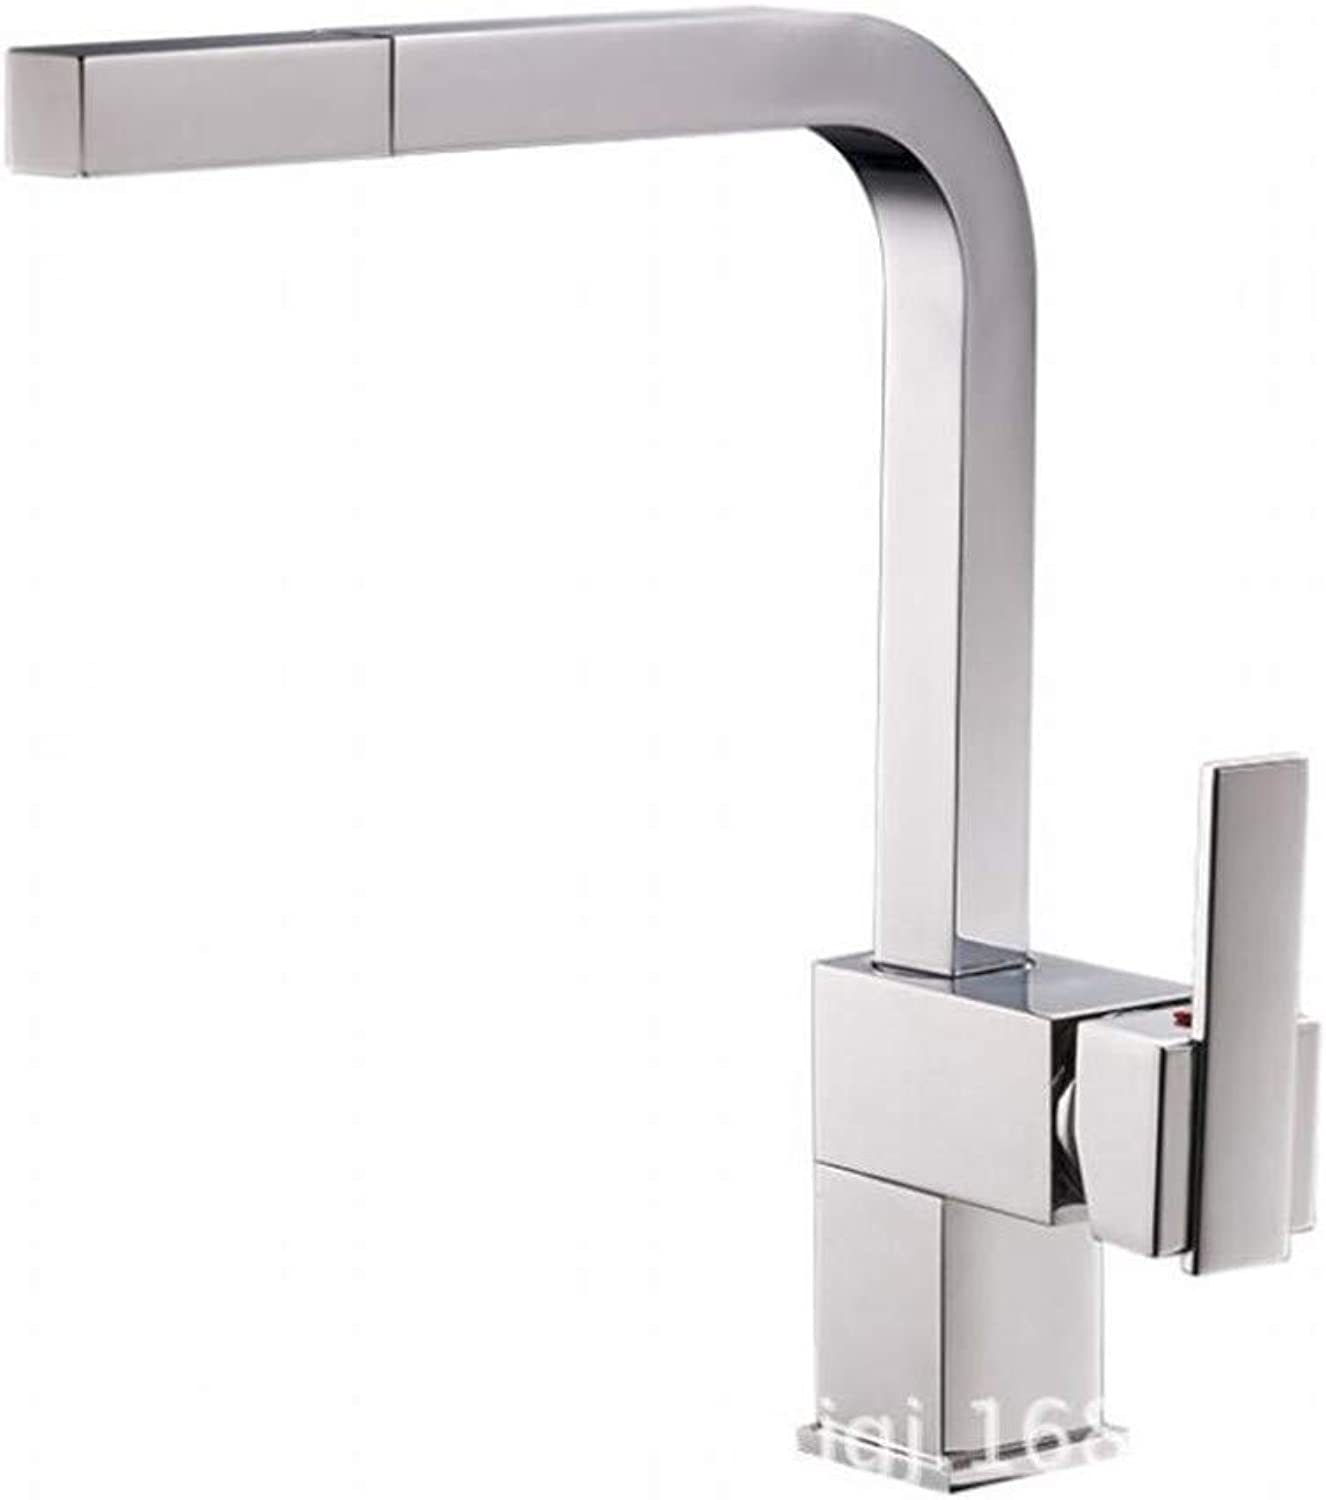 Bathroom Sink Basin Lever Mixer Tap Copper Kitchen Faucet Pull Cold and Hot Dishwash Basin Faucet Can redate